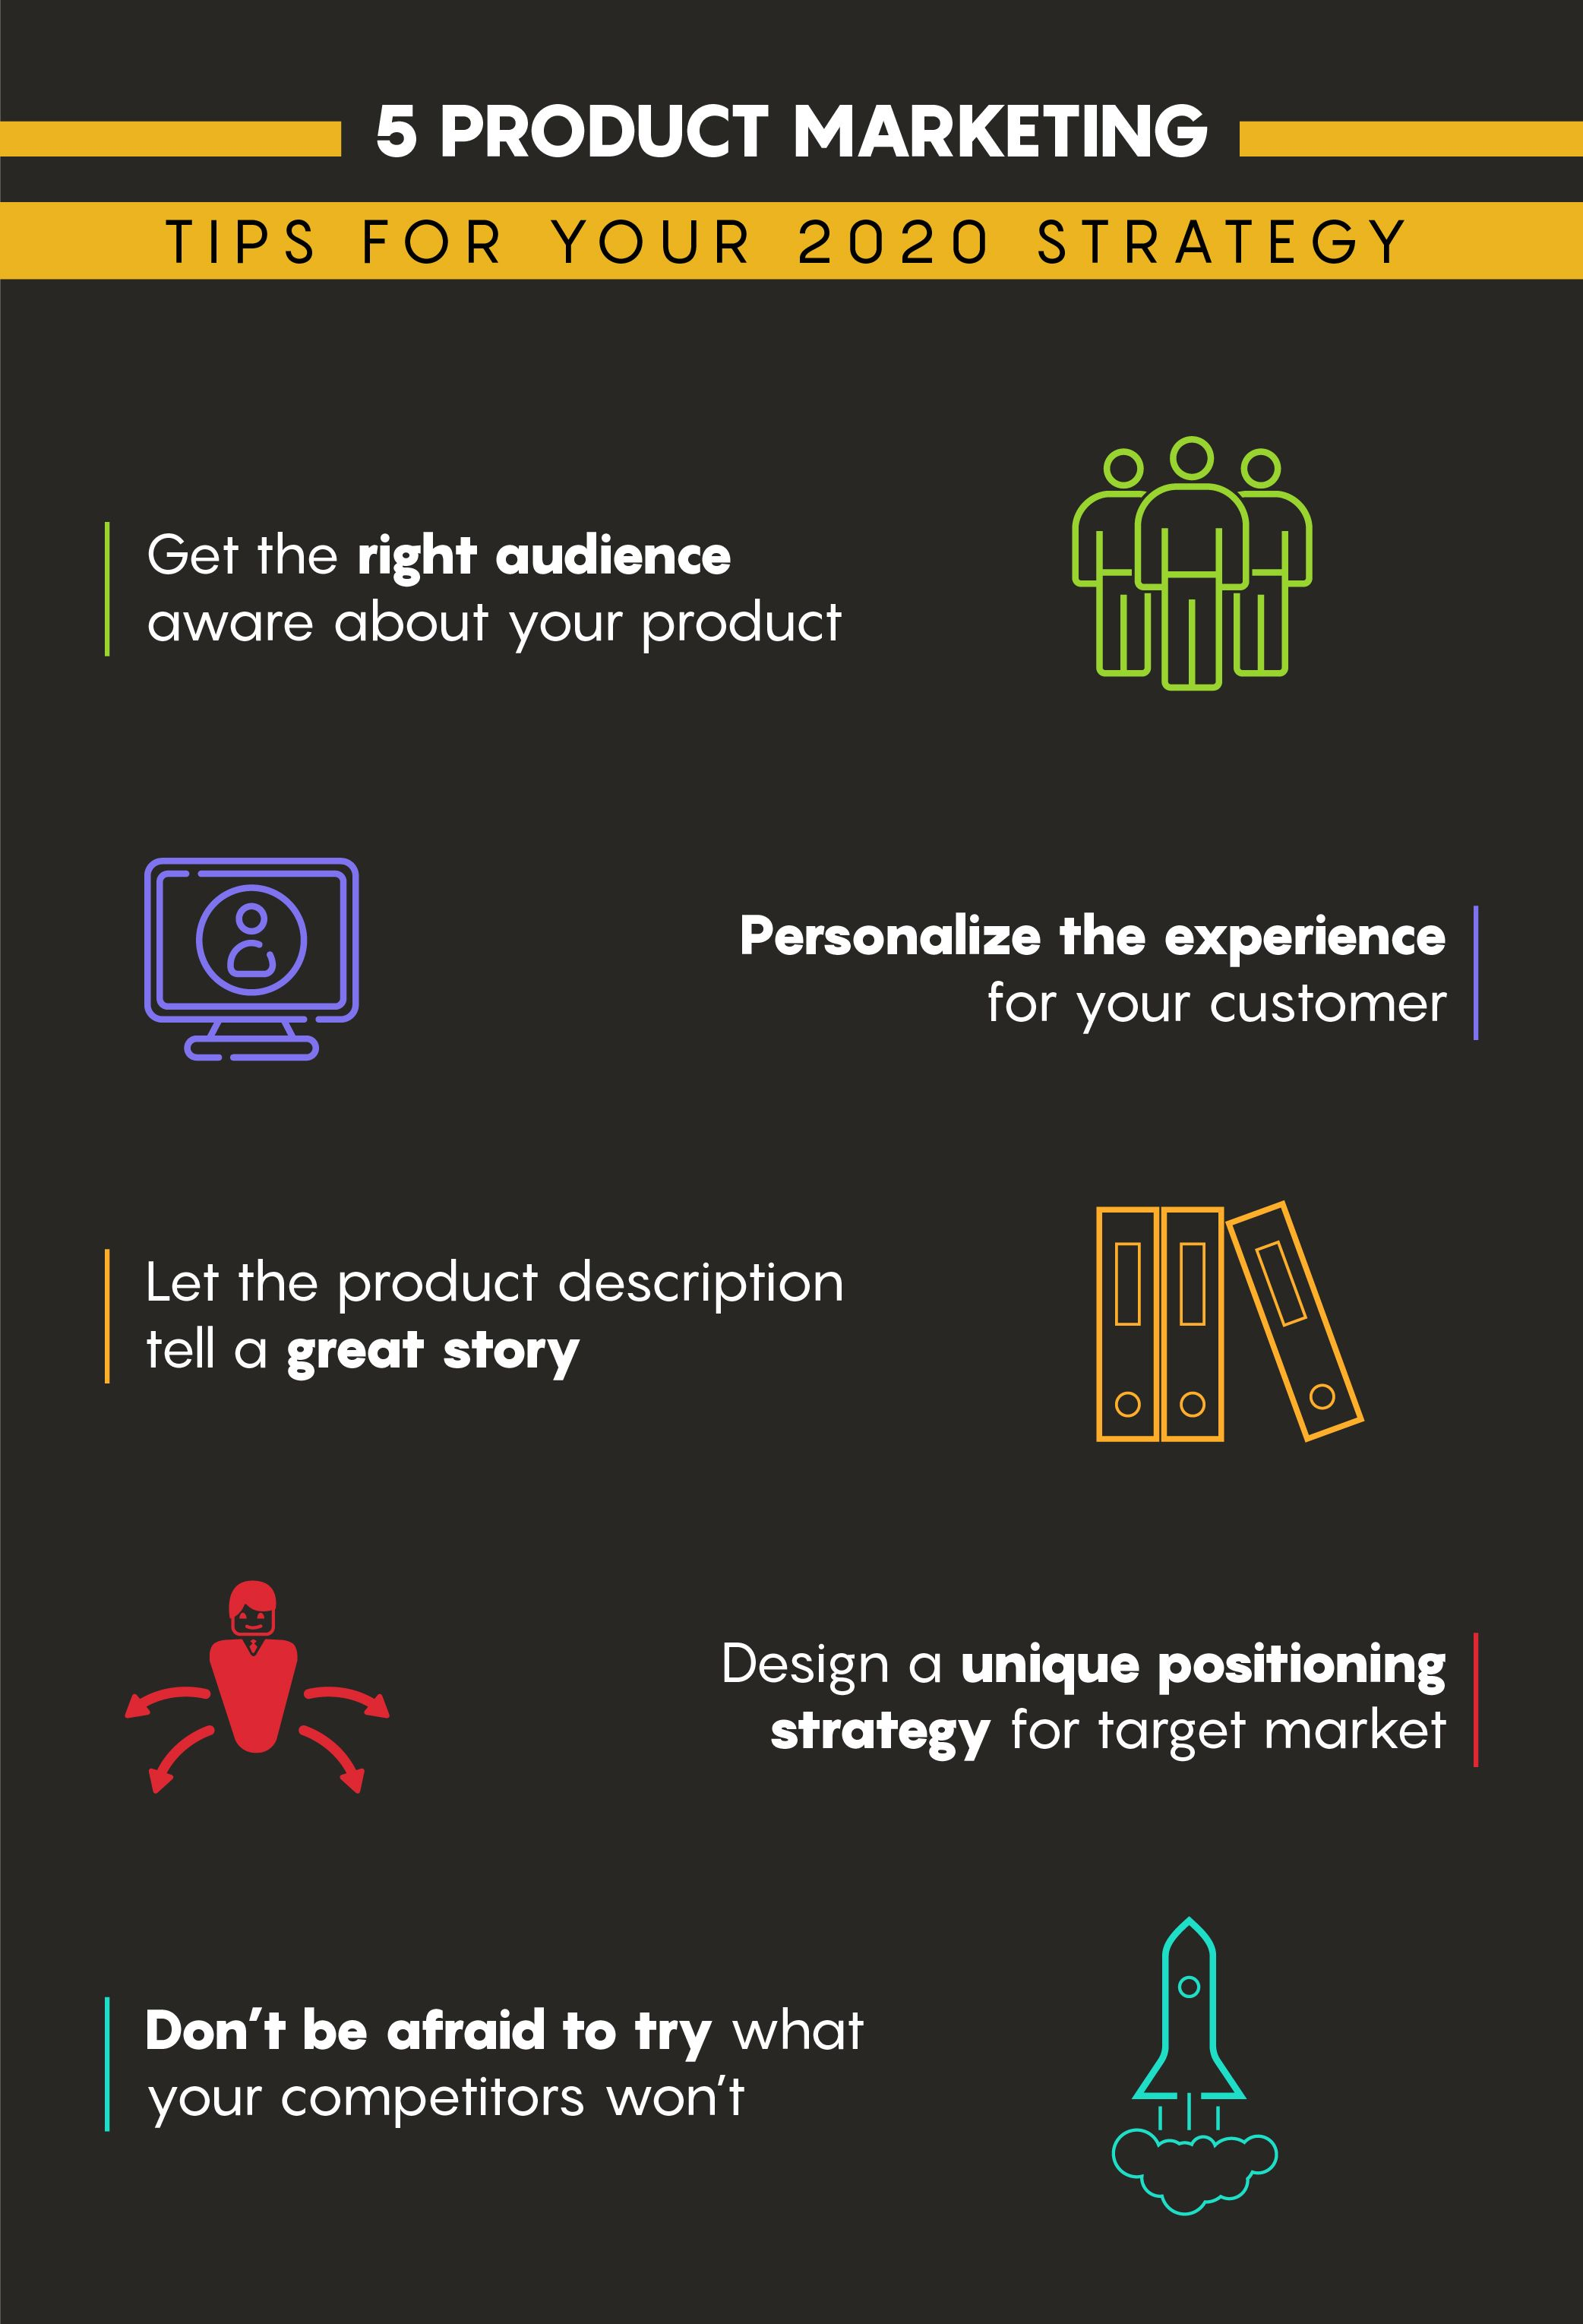 5 Product Marketing Tips For Your 2020 Strategy Business Infographic Vp Marketing Marketing Company